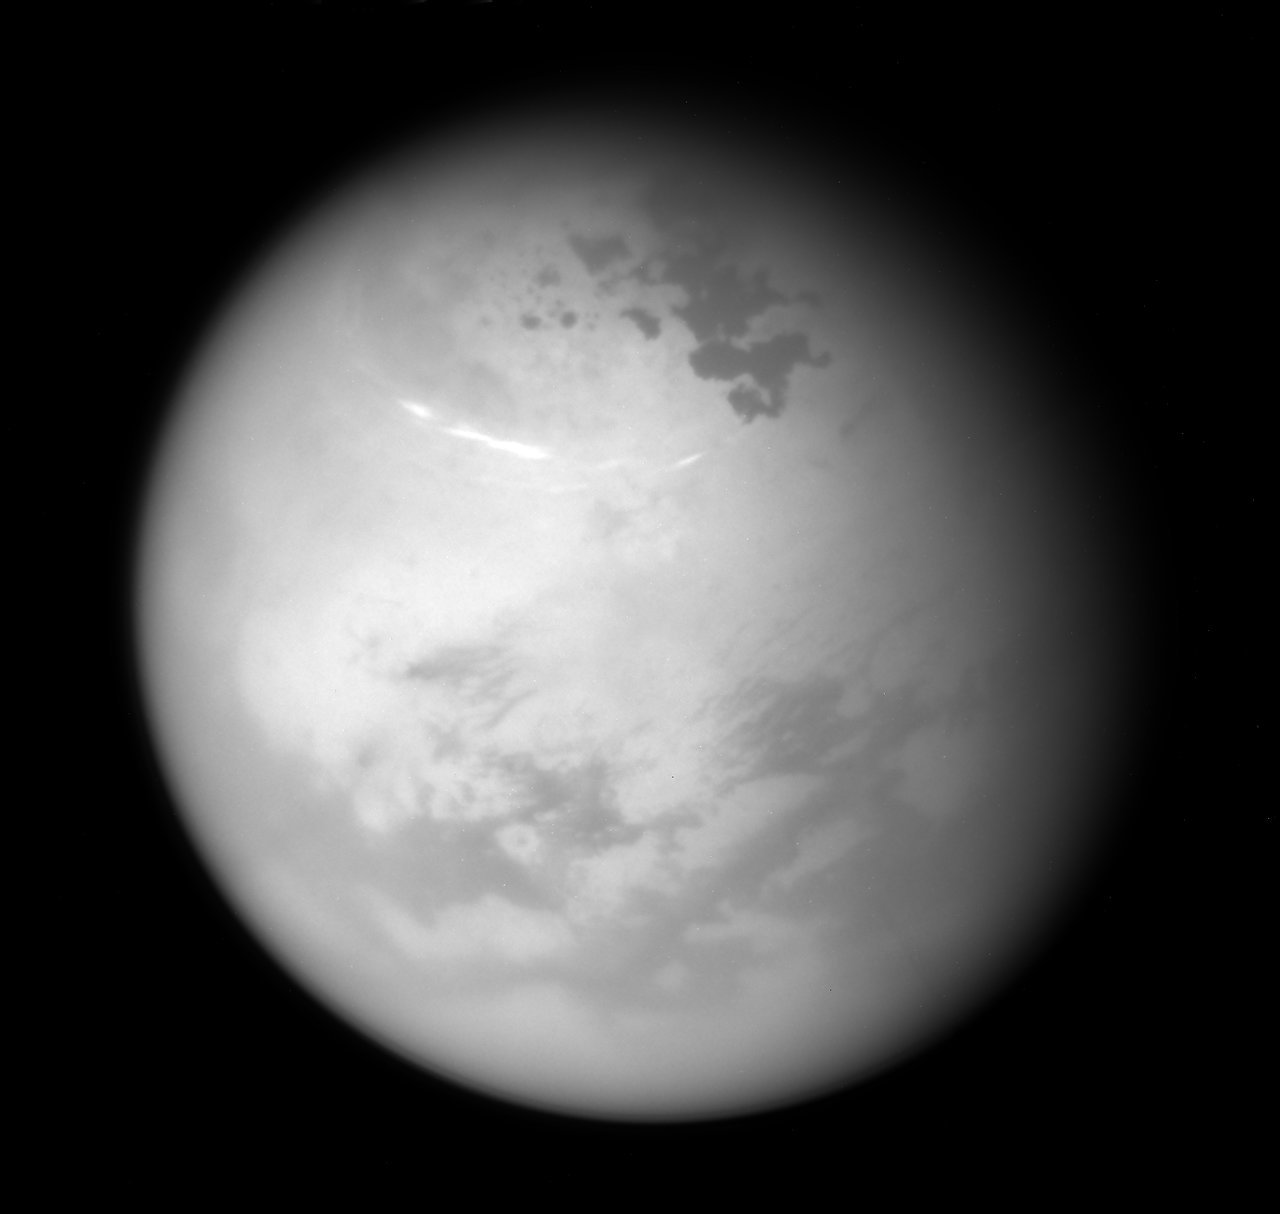 NASA's Cassini spacecraft sees bright methane clouds drifting in the summer skies of Saturn's moon Titan, along with dark hydrocarbon lakes and seas clustered around the north pole. › Full image and caption